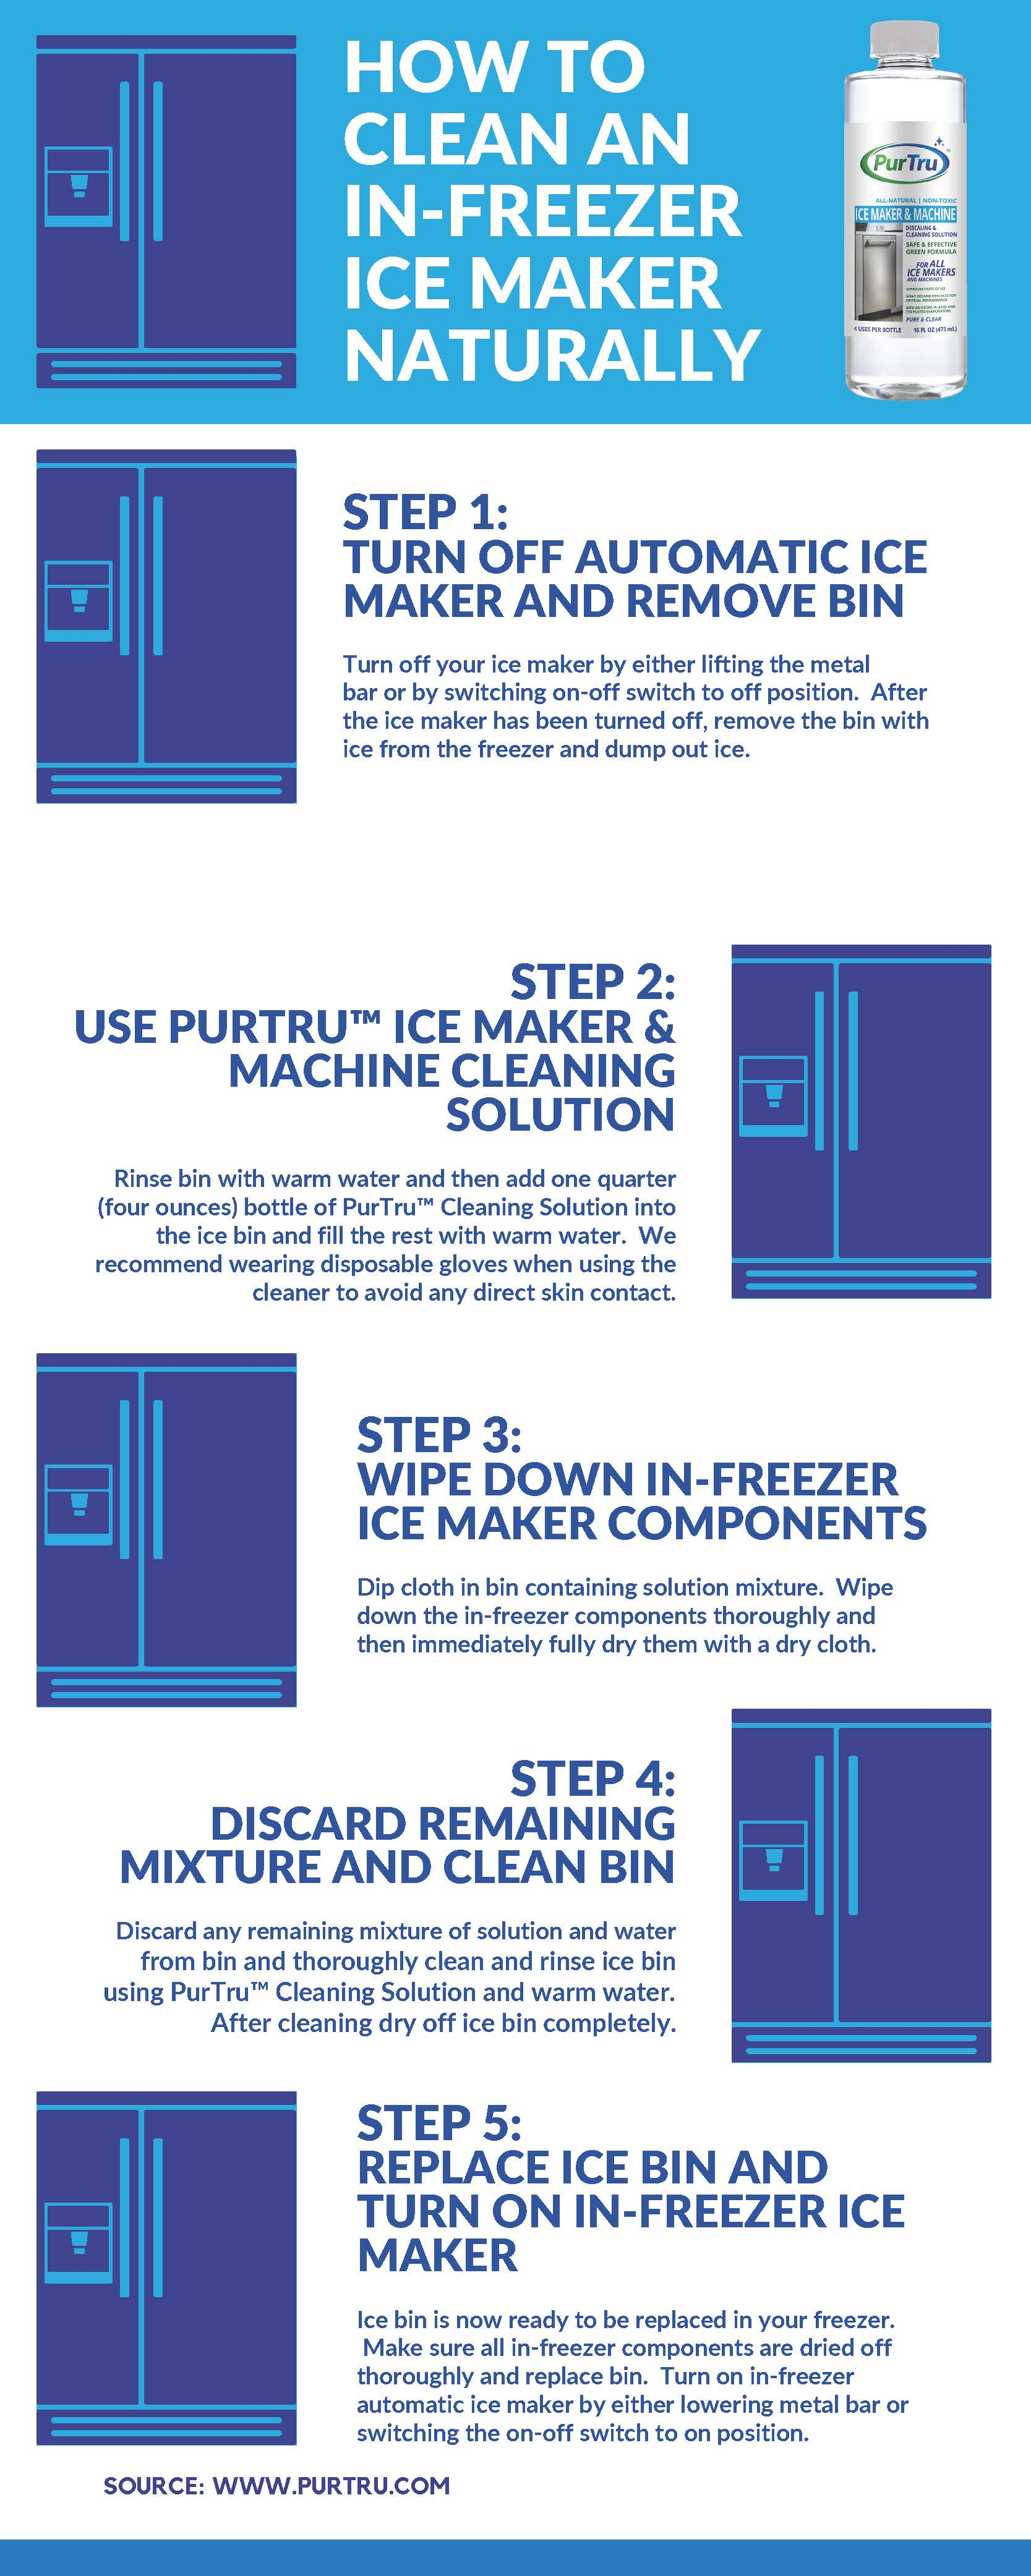 How To Clean An In-Freezer Ice maker Naturally